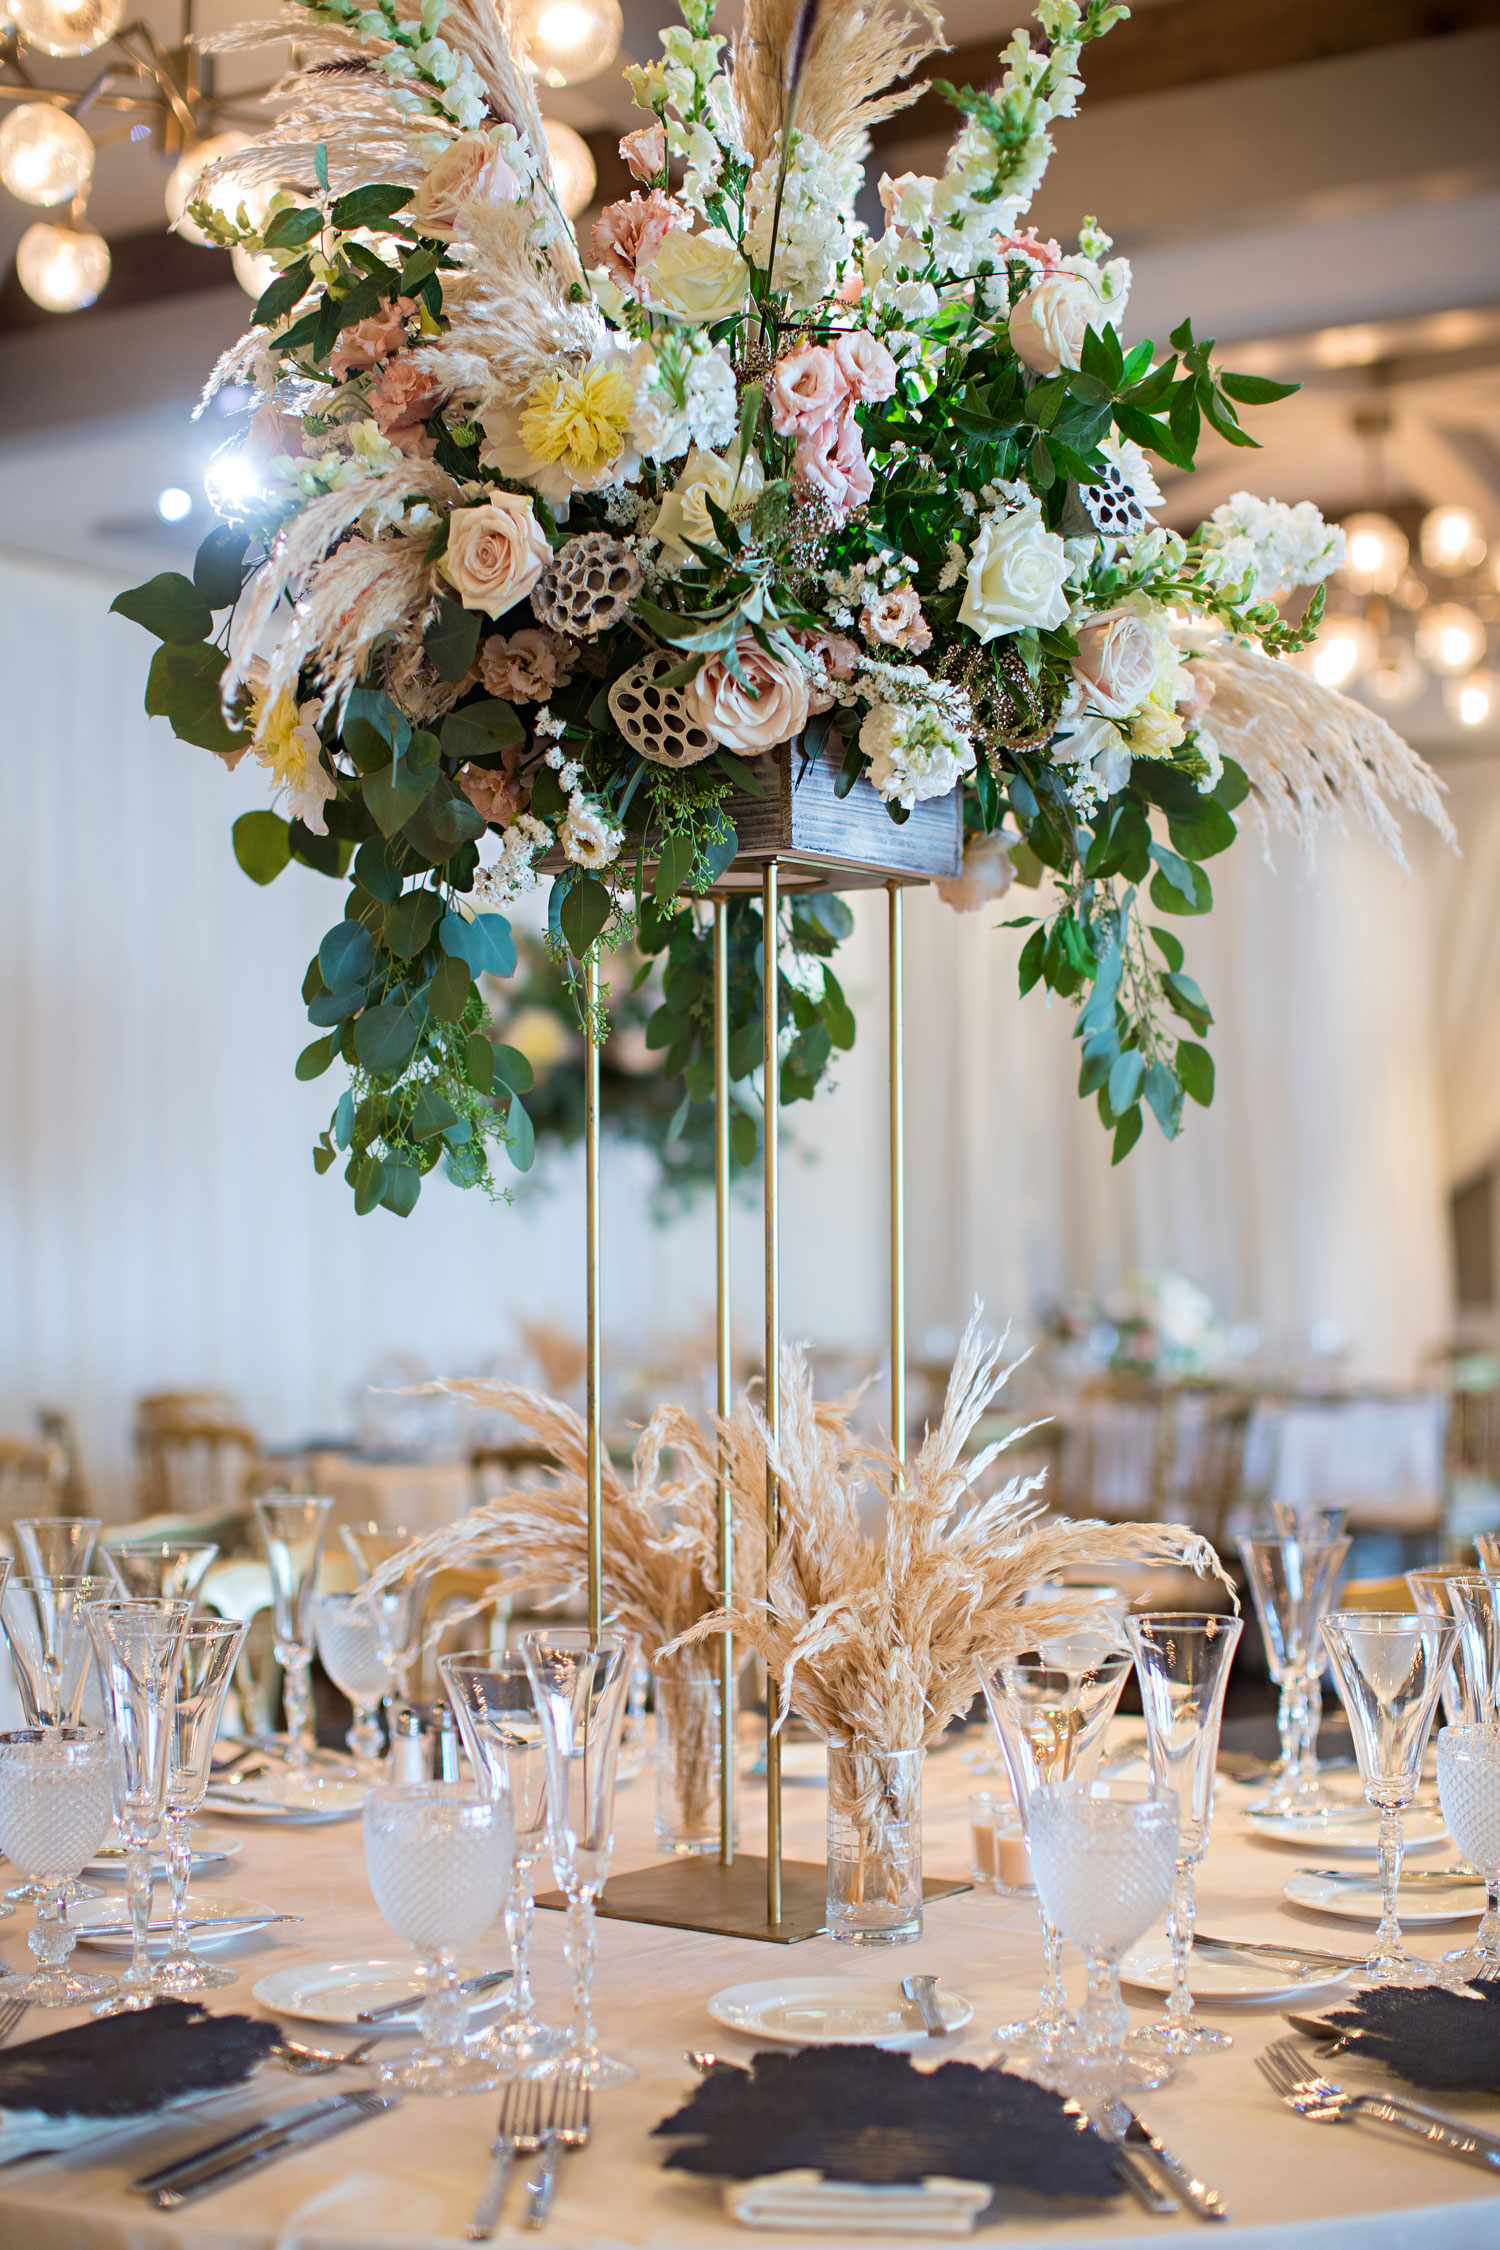 wedding reception decorations pampas grass dried foliage new wedding trend